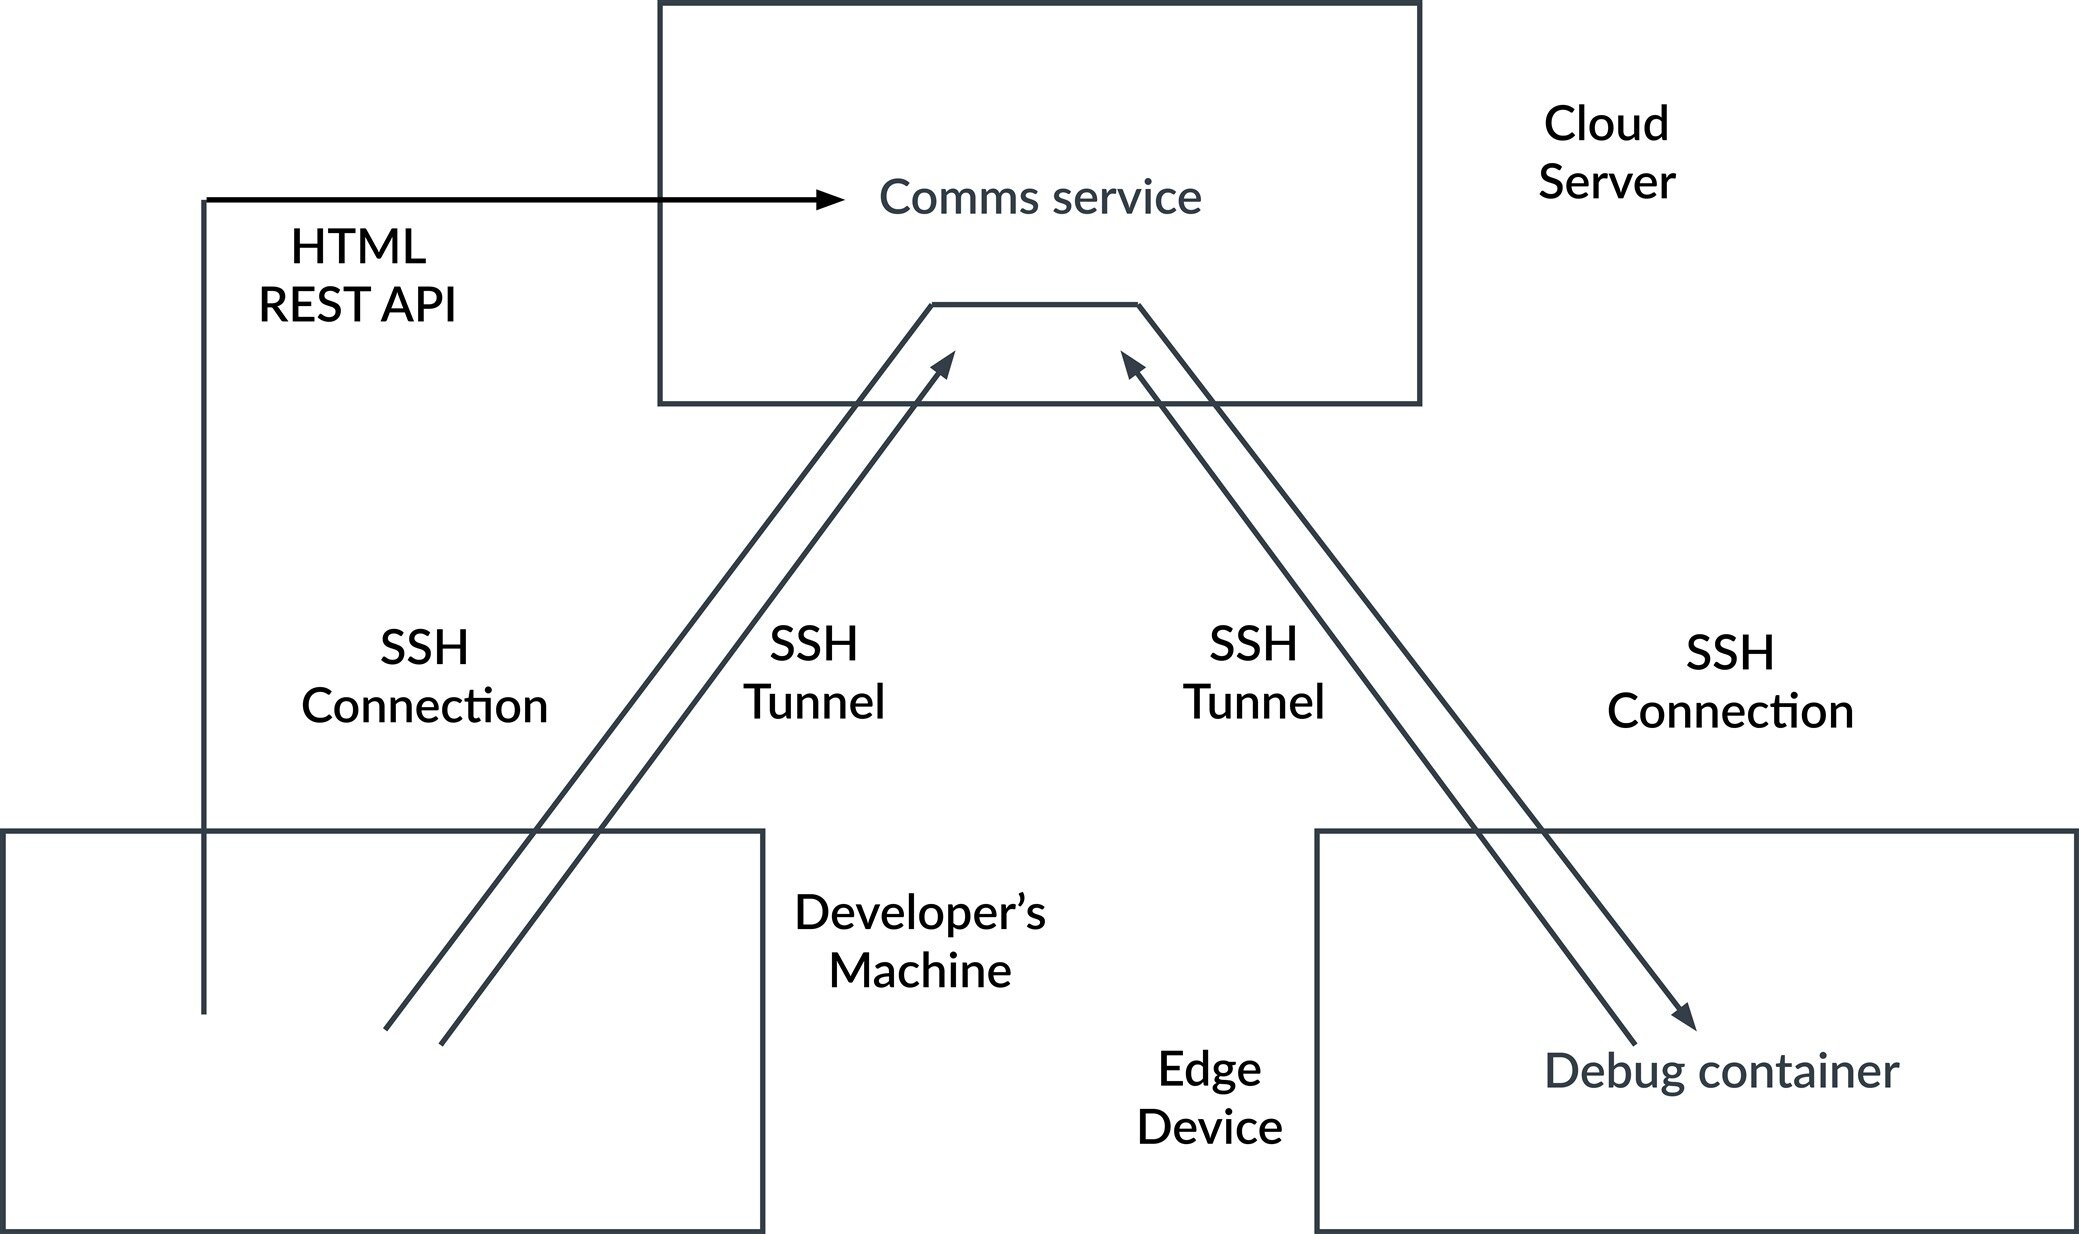 A diagram demonstrating the comms services workflow